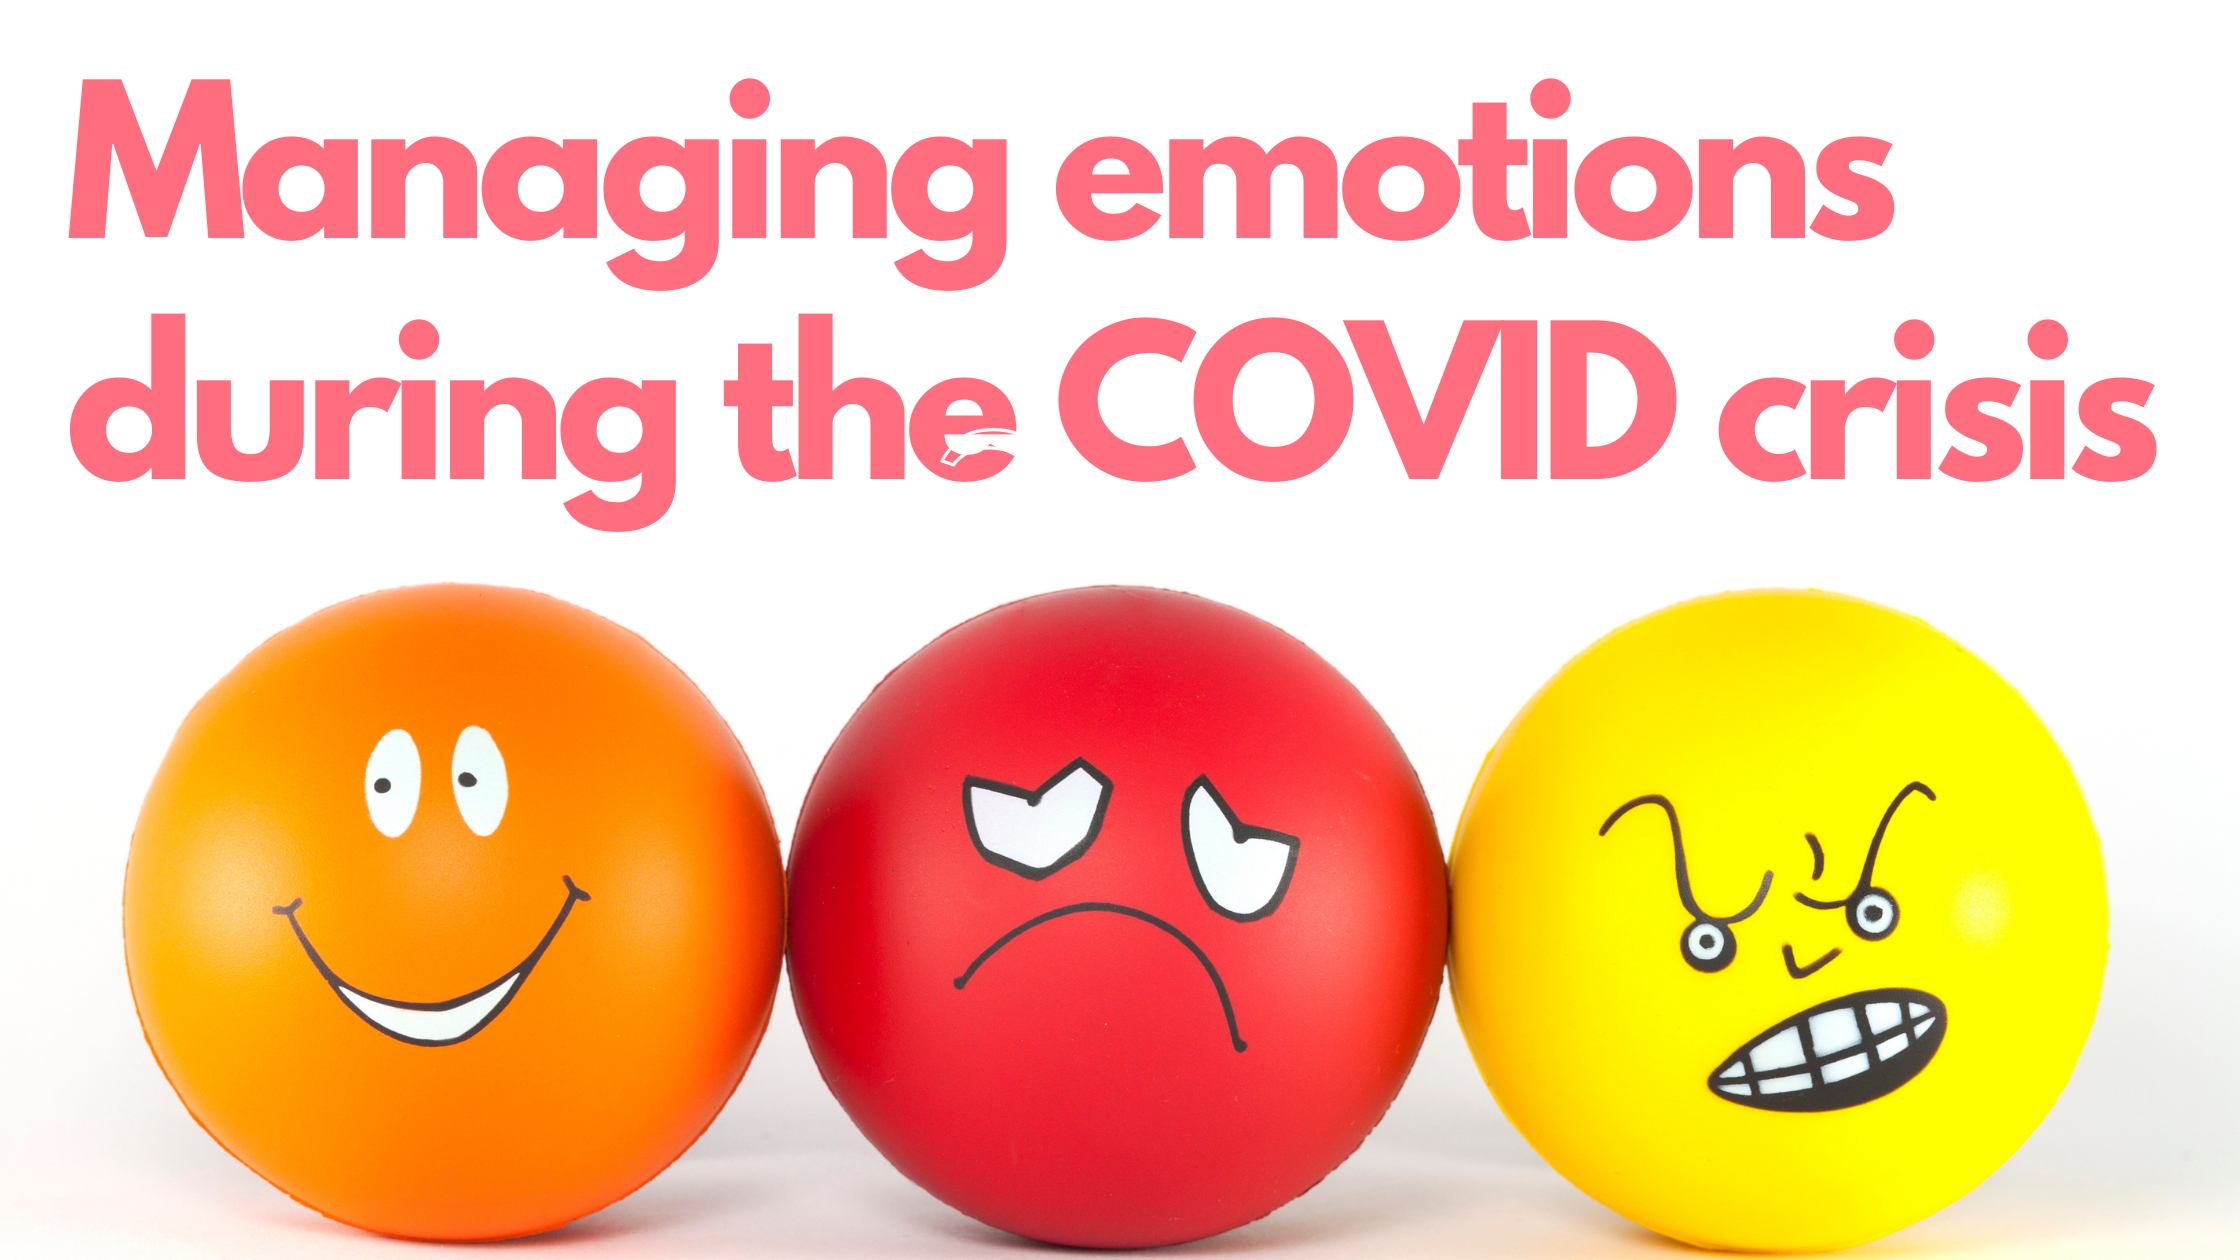 How to manage emotions during COVID pandemic